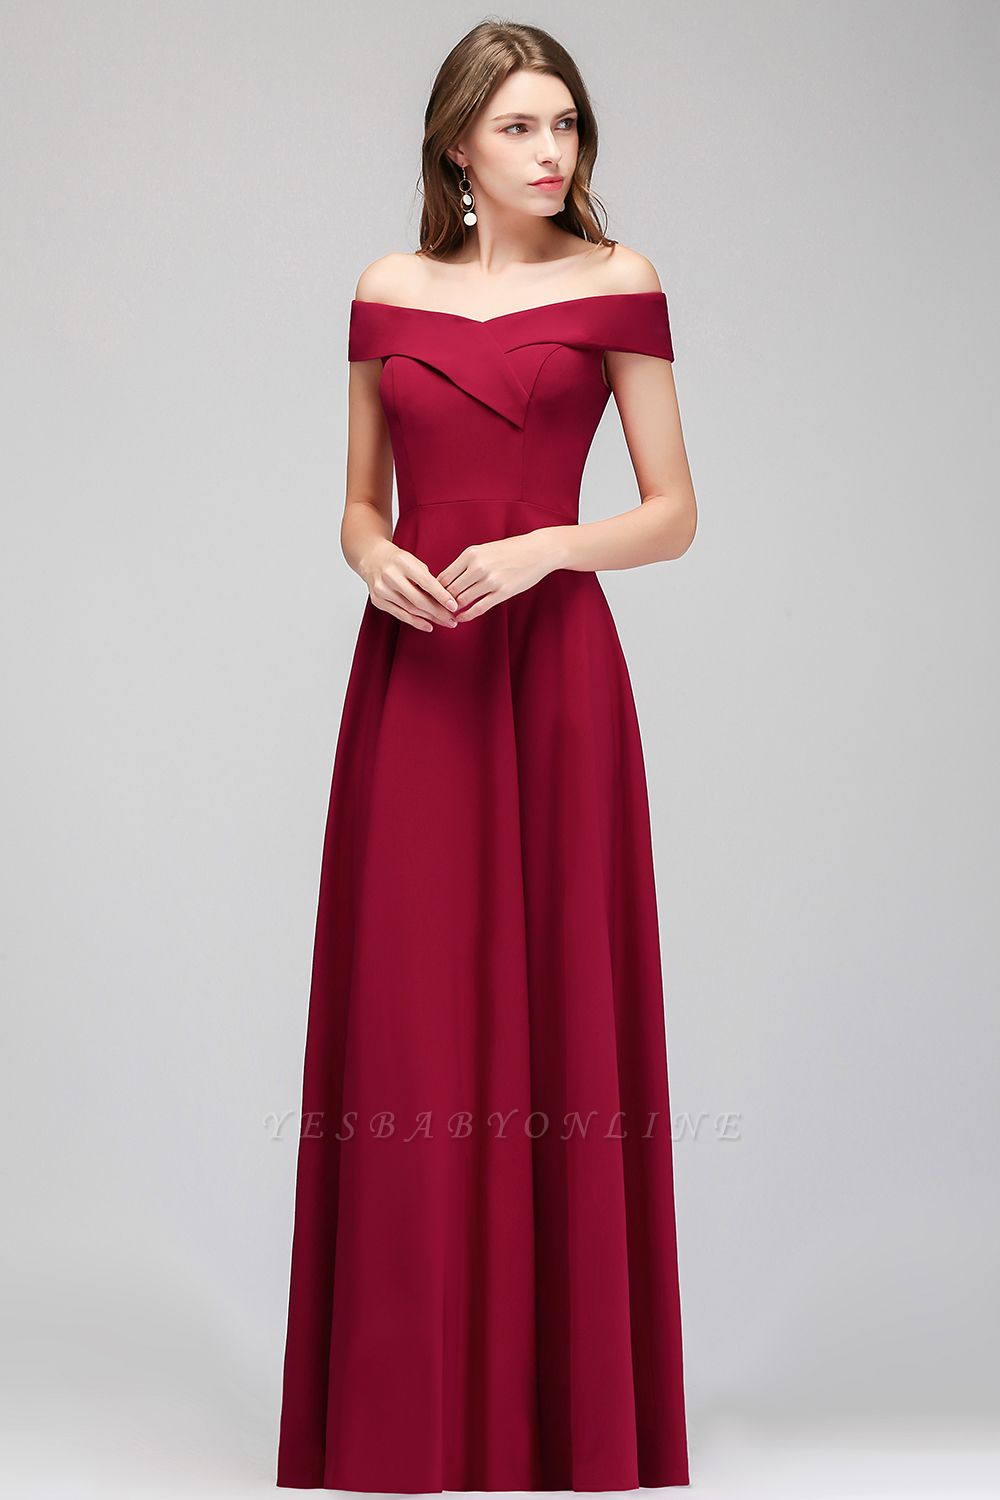 A-line Off-the-Shoulder Long Burgundy Evening Gowns